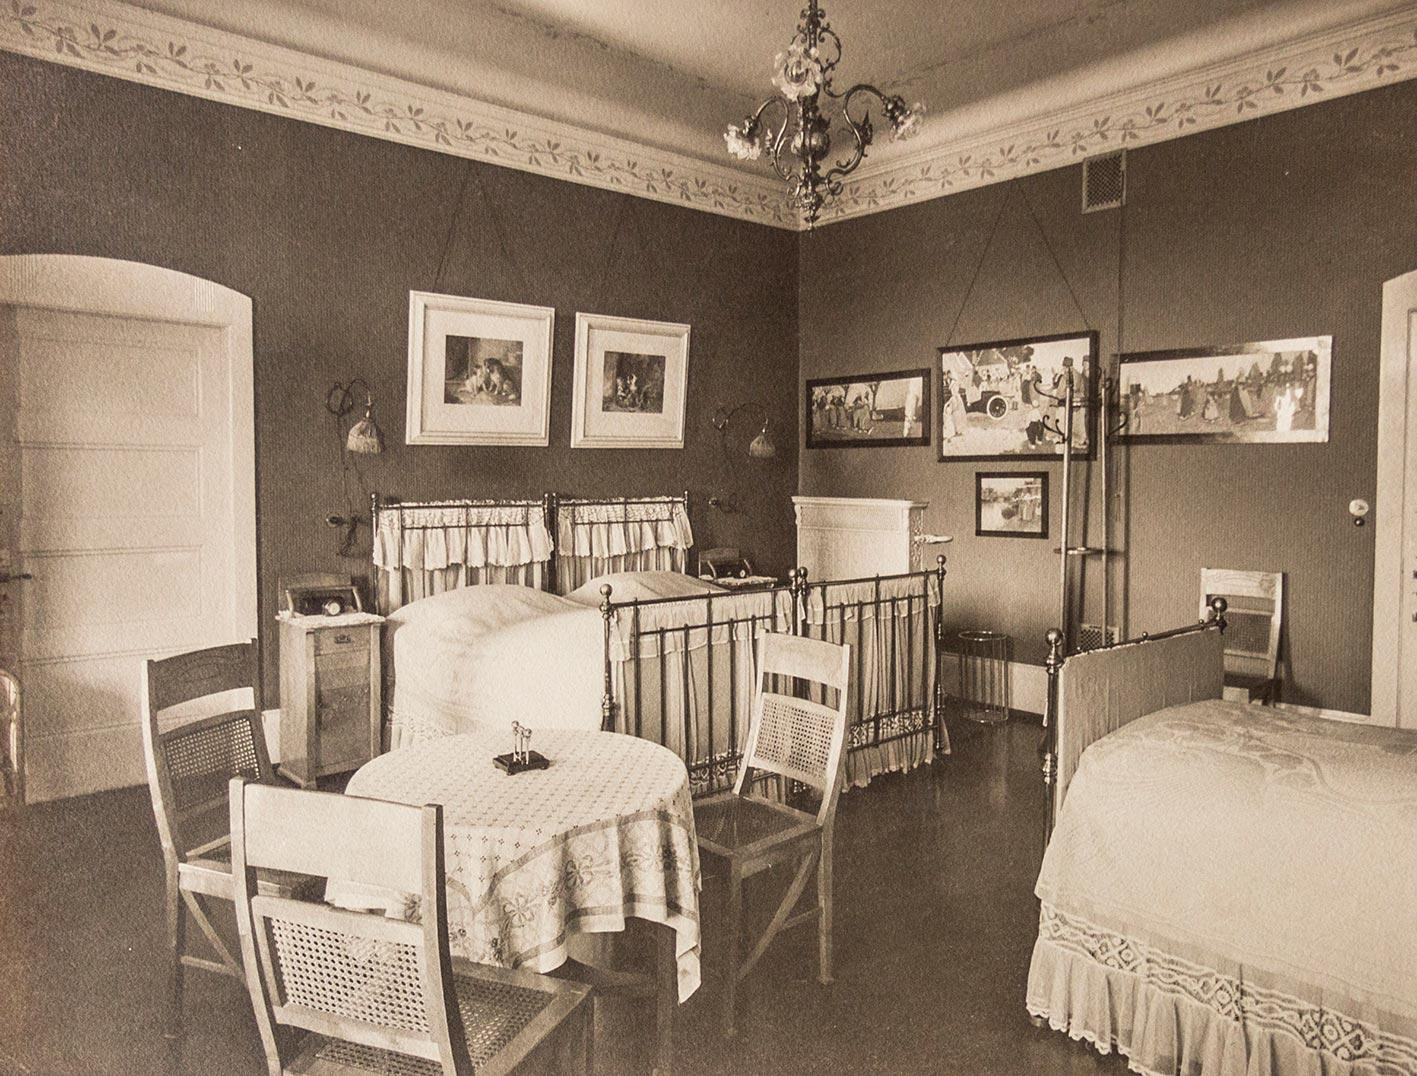 jugendstil kinderzimmer einrichtung eines von anonymer fotograf zvab. Black Bedroom Furniture Sets. Home Design Ideas